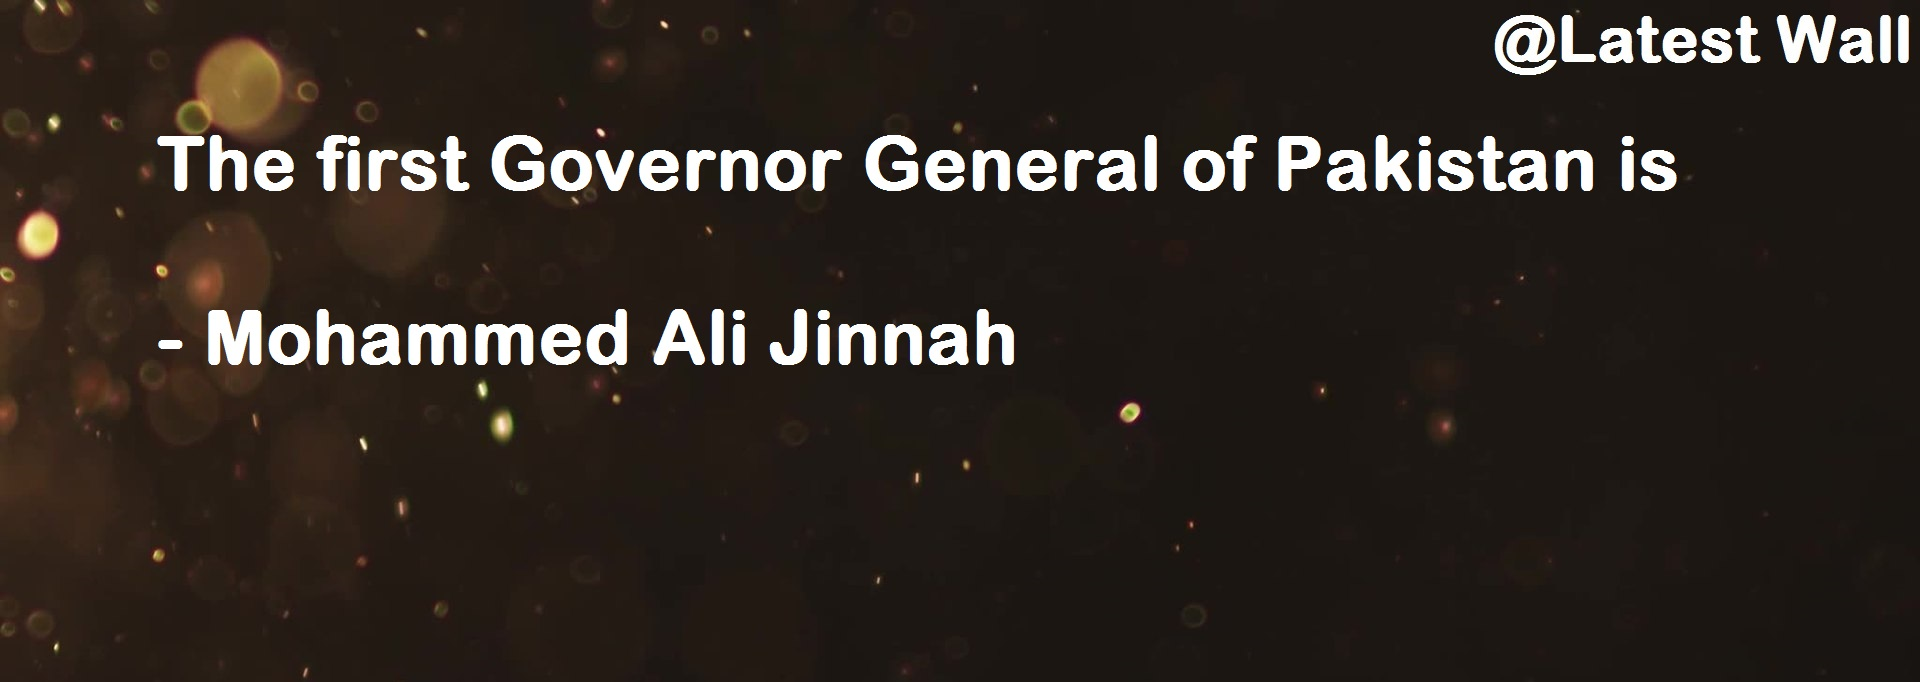 The first Governor General of Pakistan is